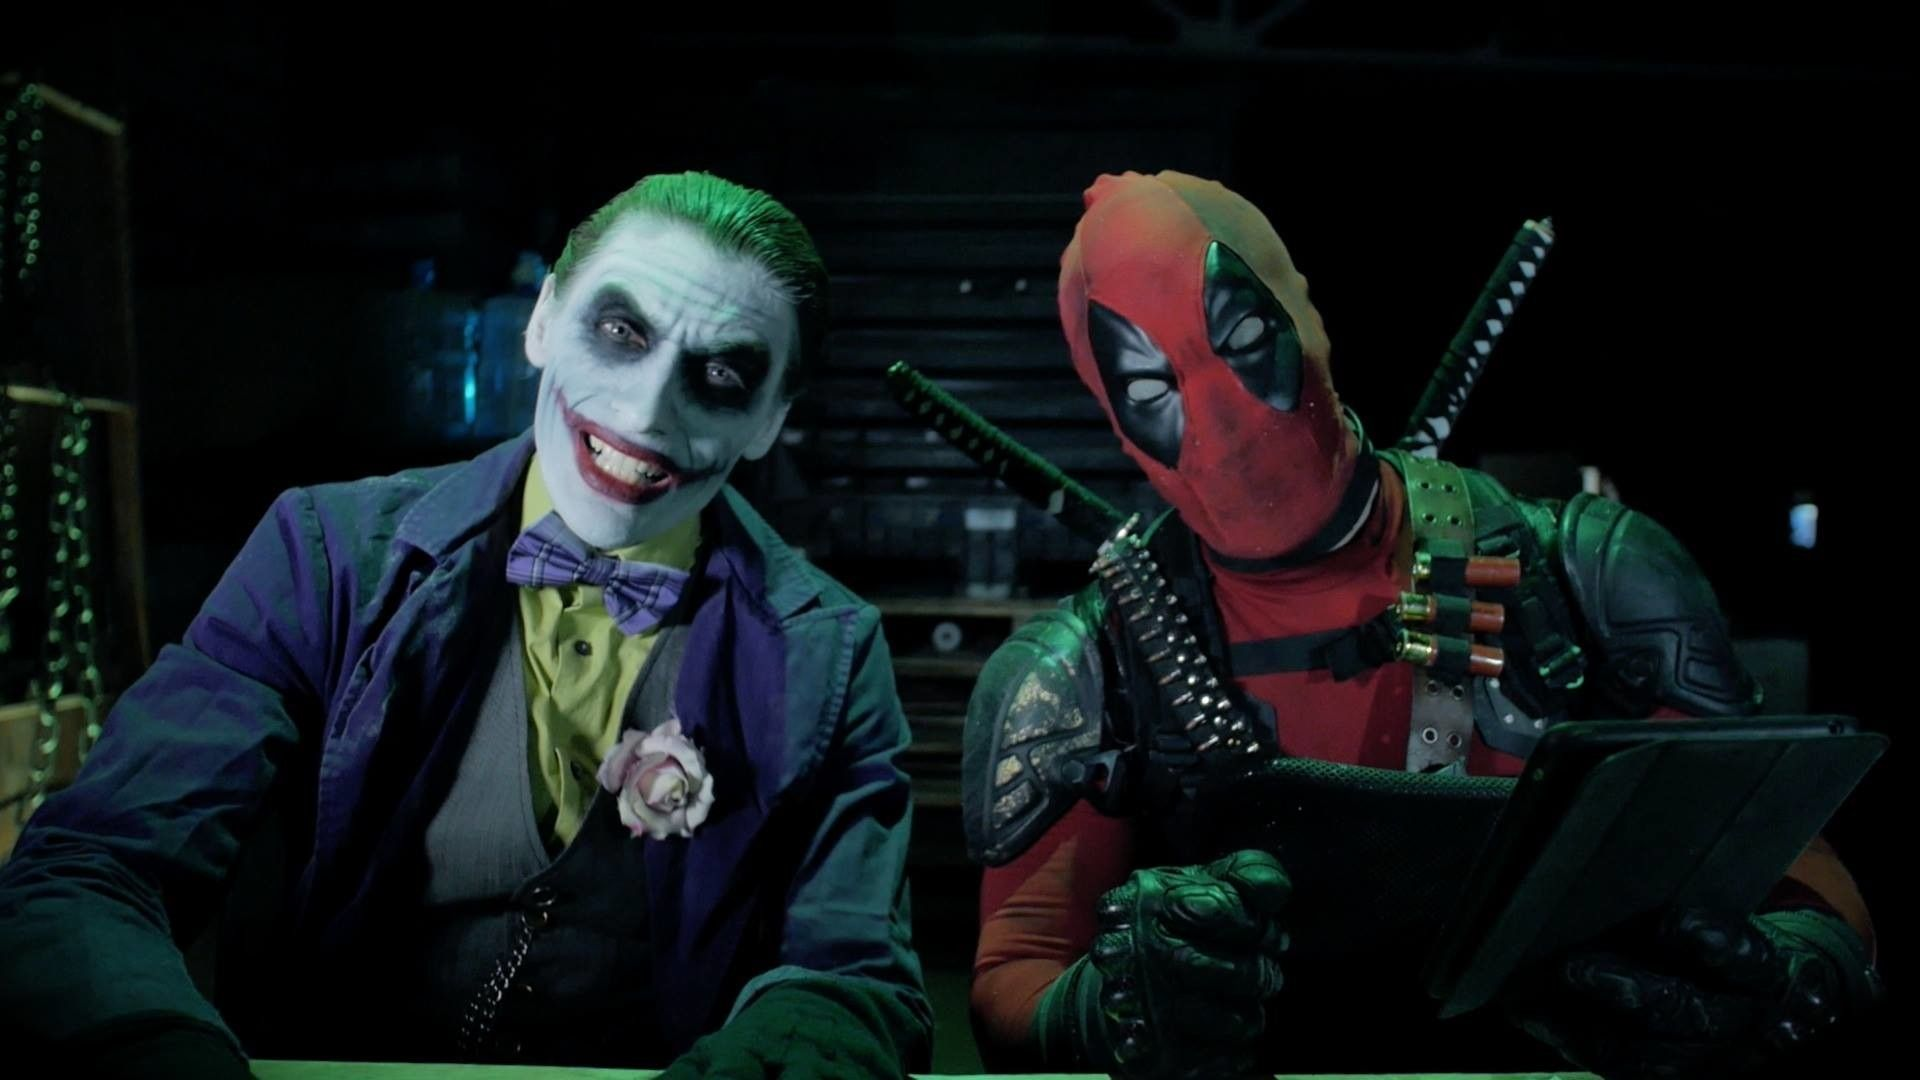 Deadpool And Harley Quinn Wallpapers Wallpaper Cave